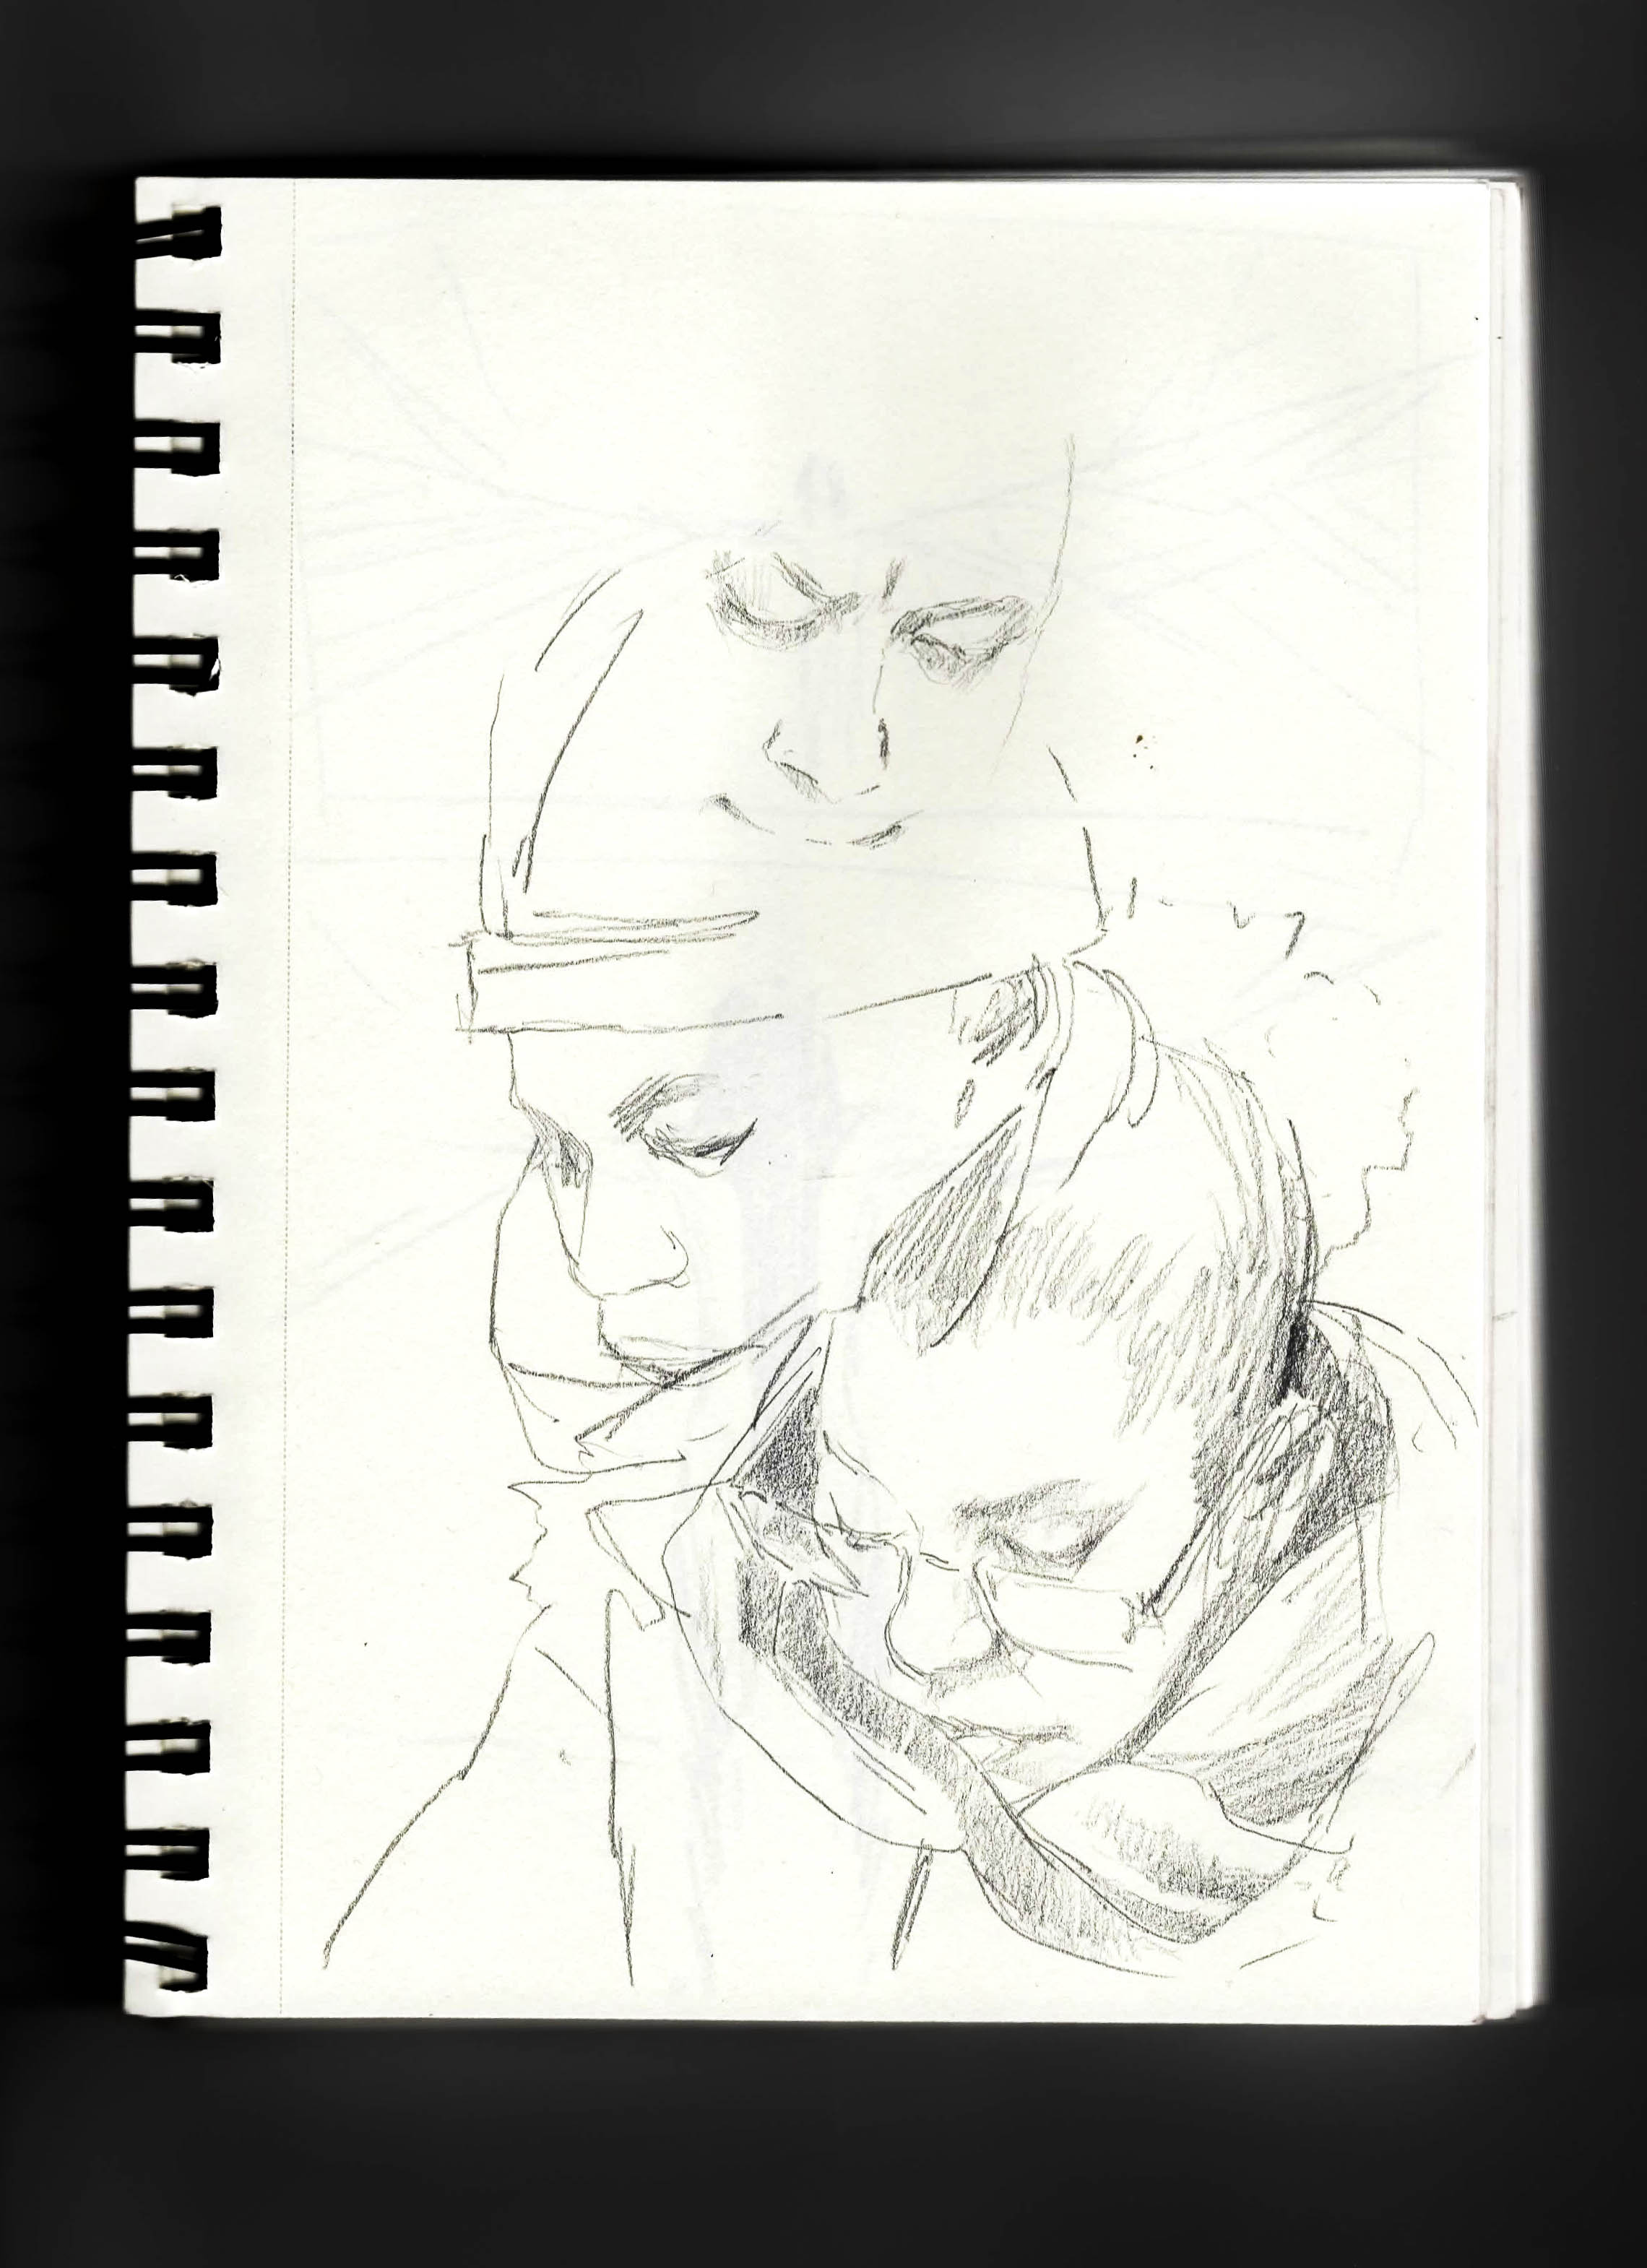 nyc subway sketch